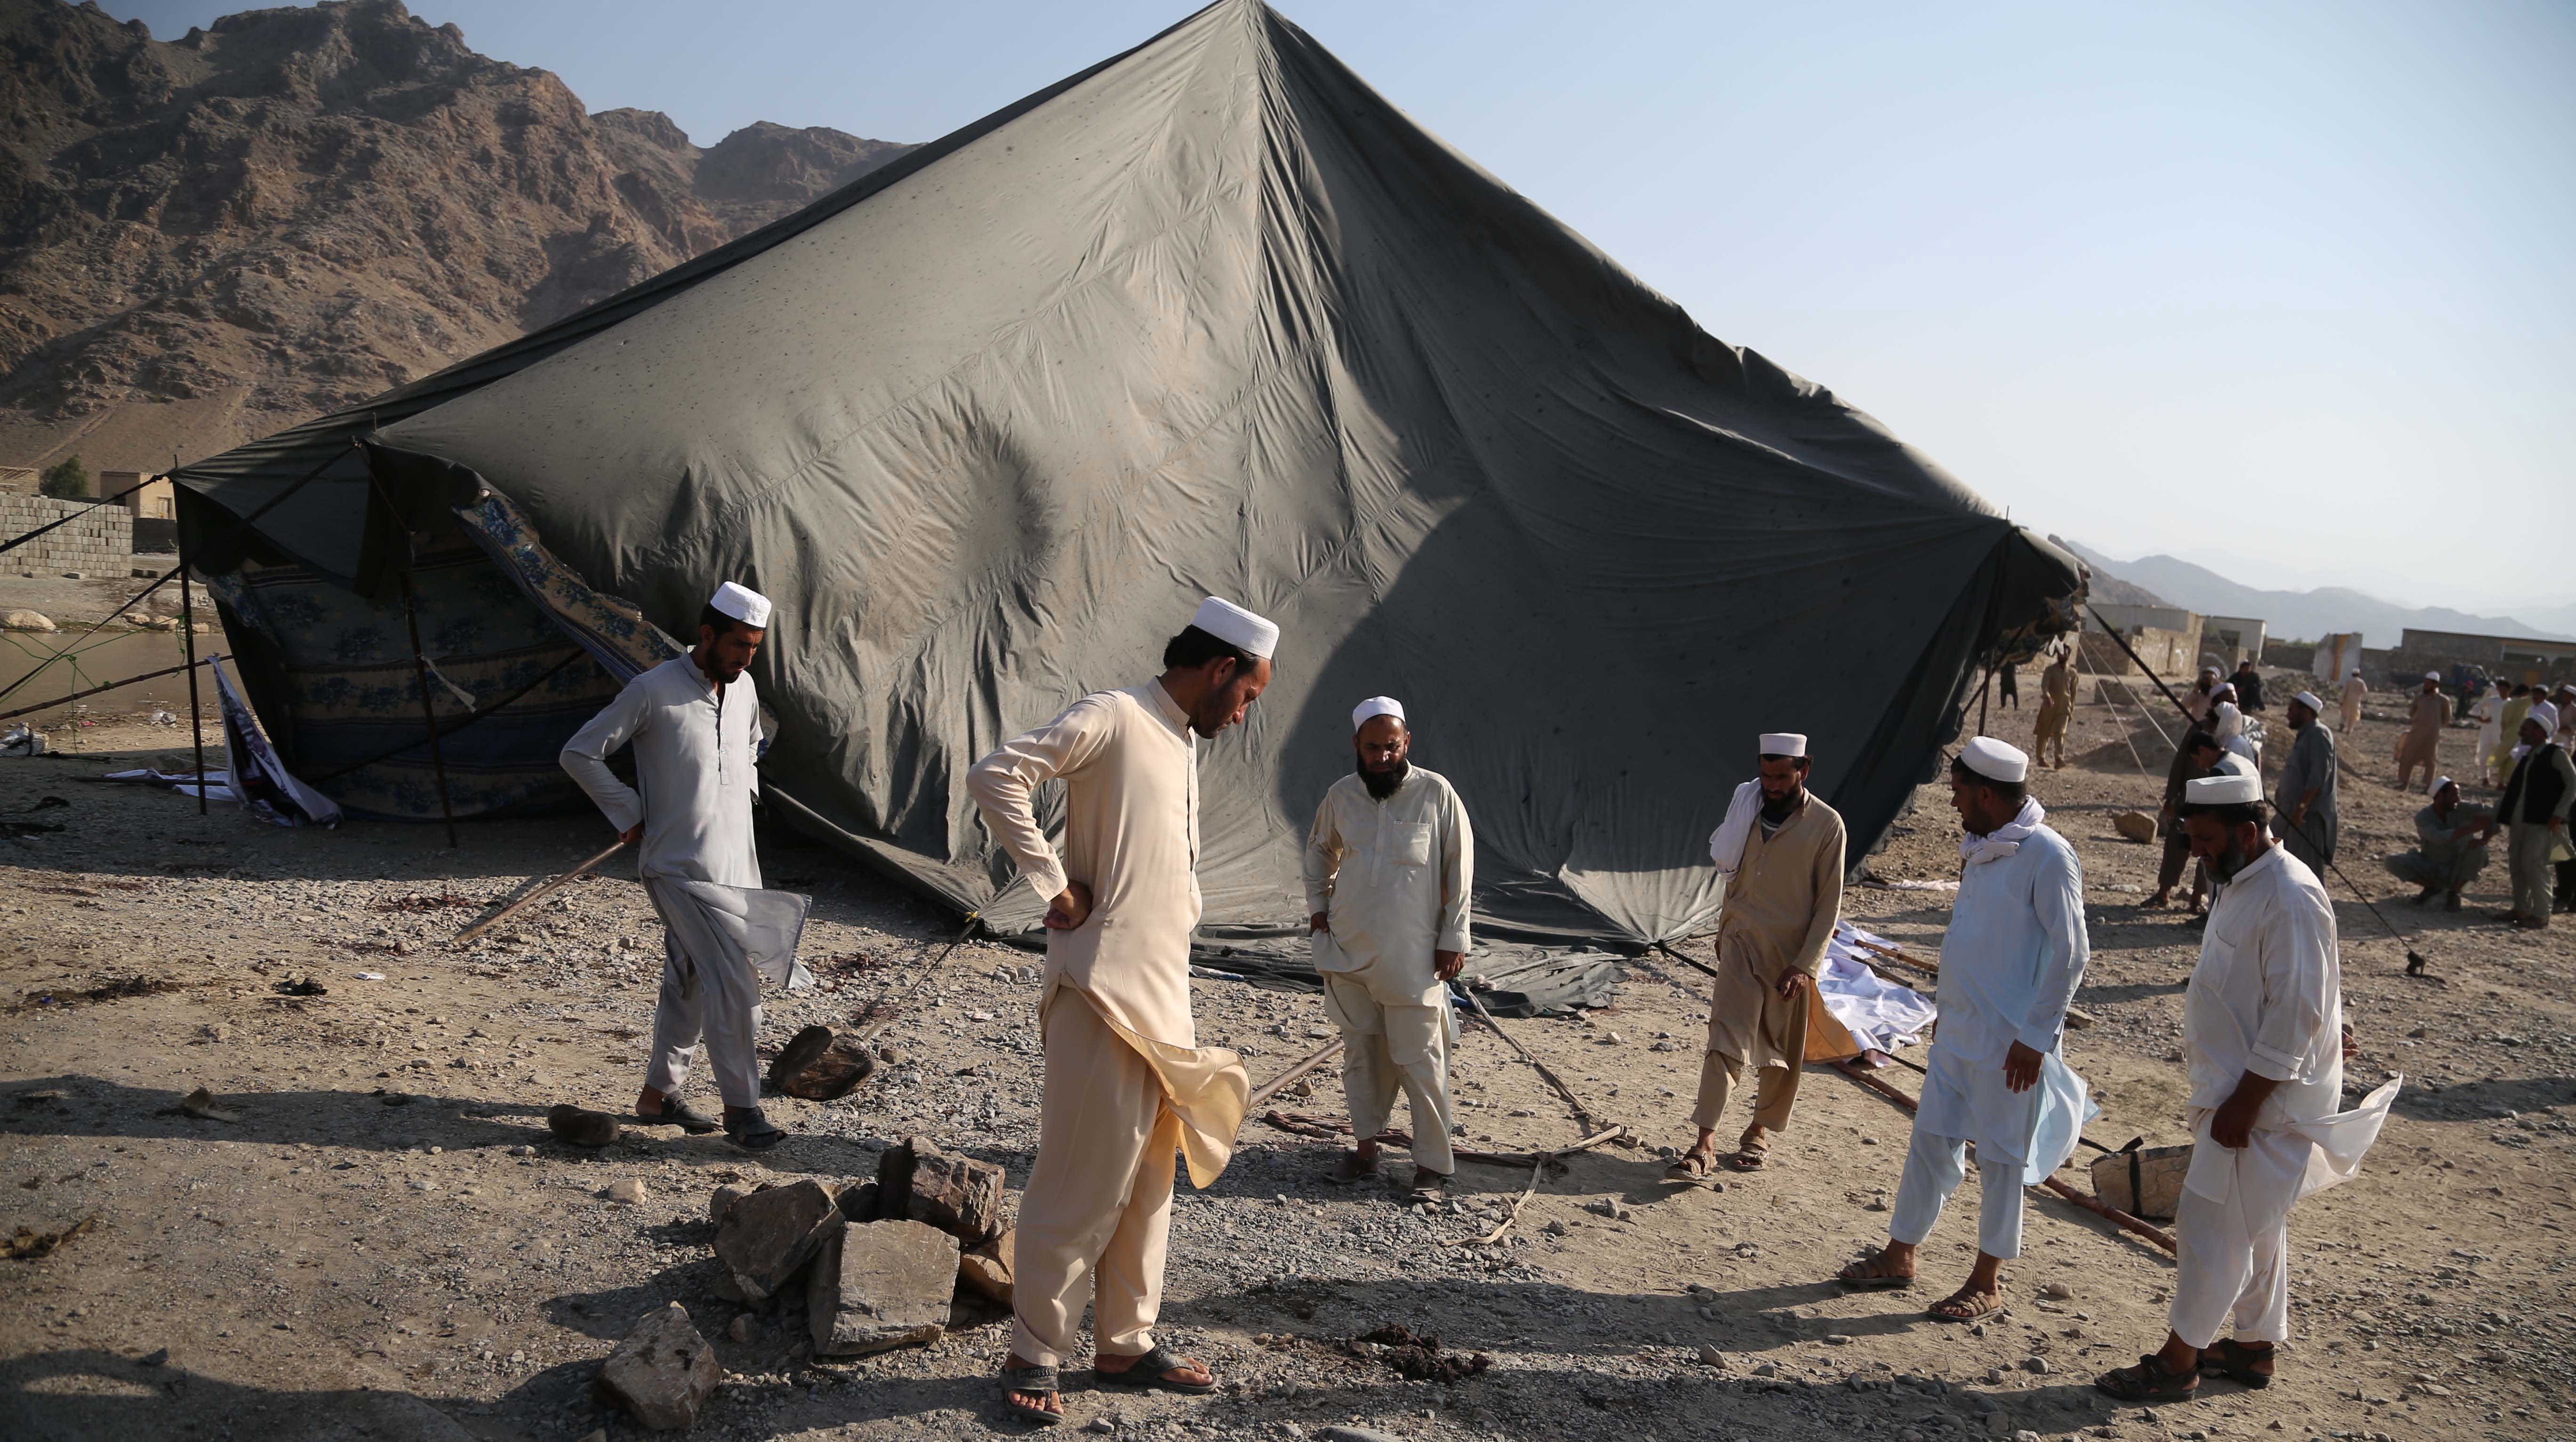 Tuesday's attack was marked by one of the highest death tolls in attacks in Afghanistan this year.